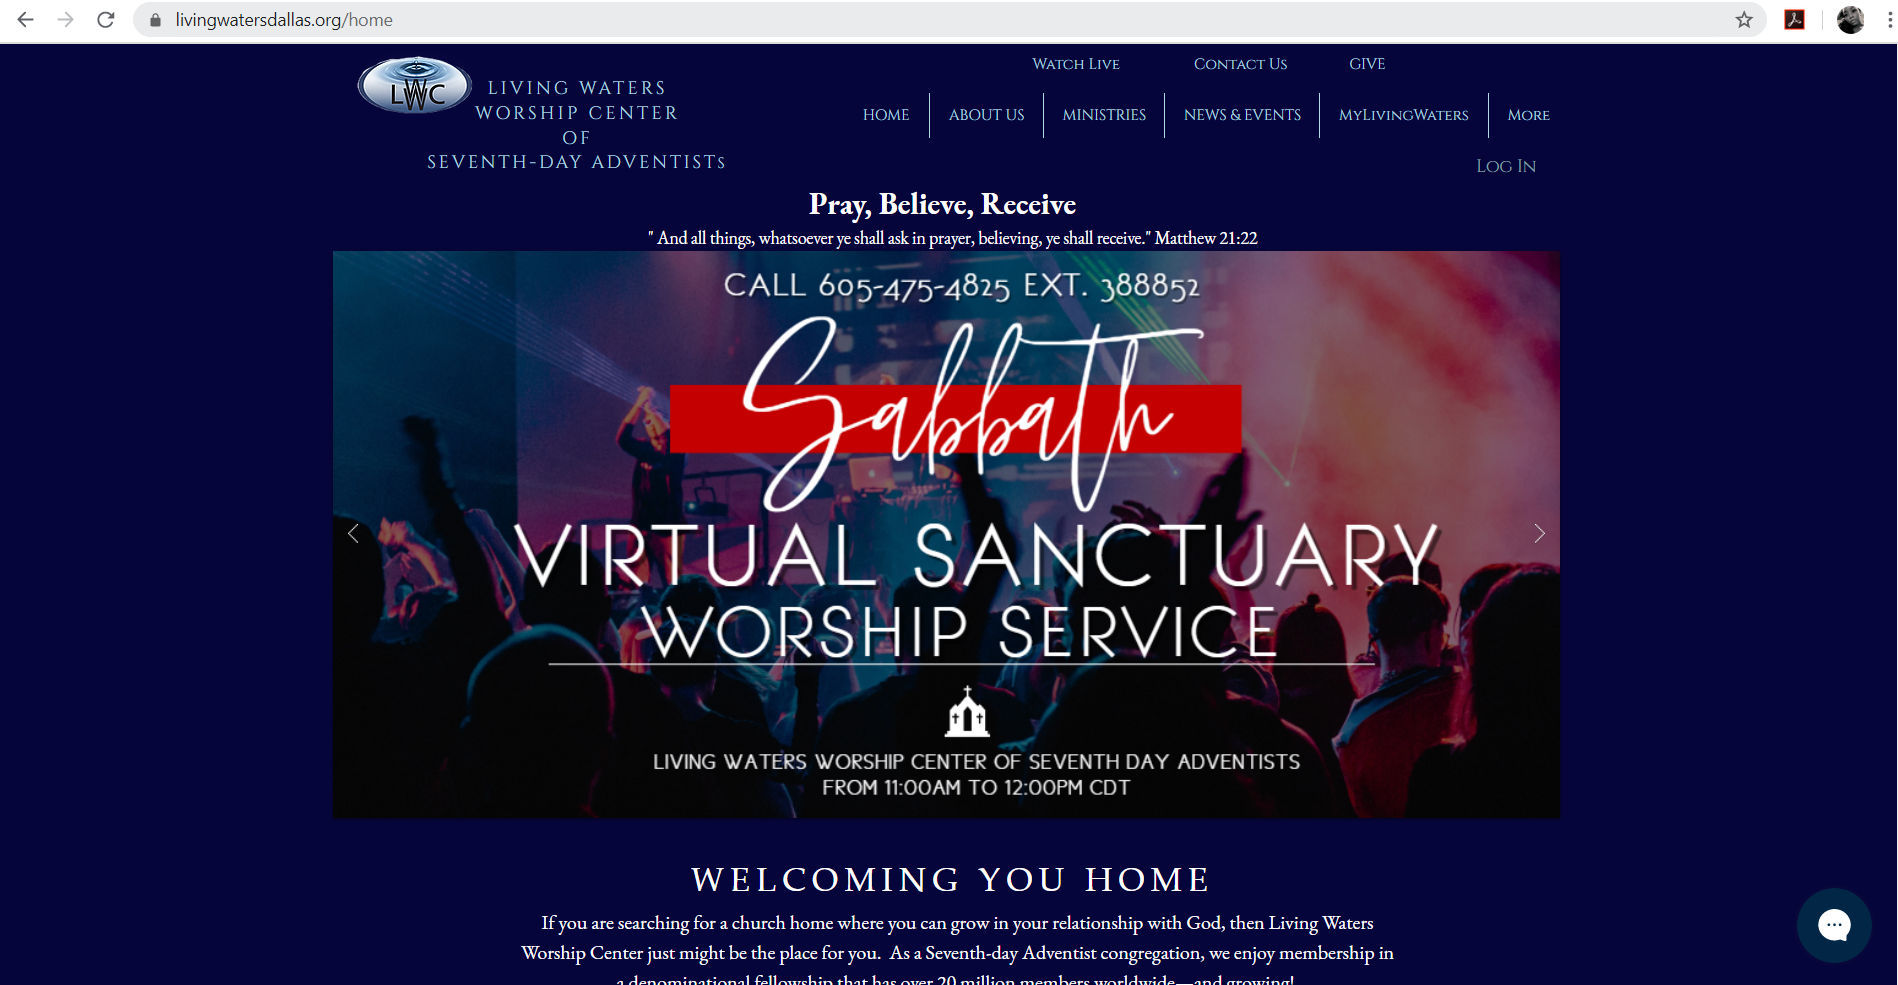 Living Waters Worship Center